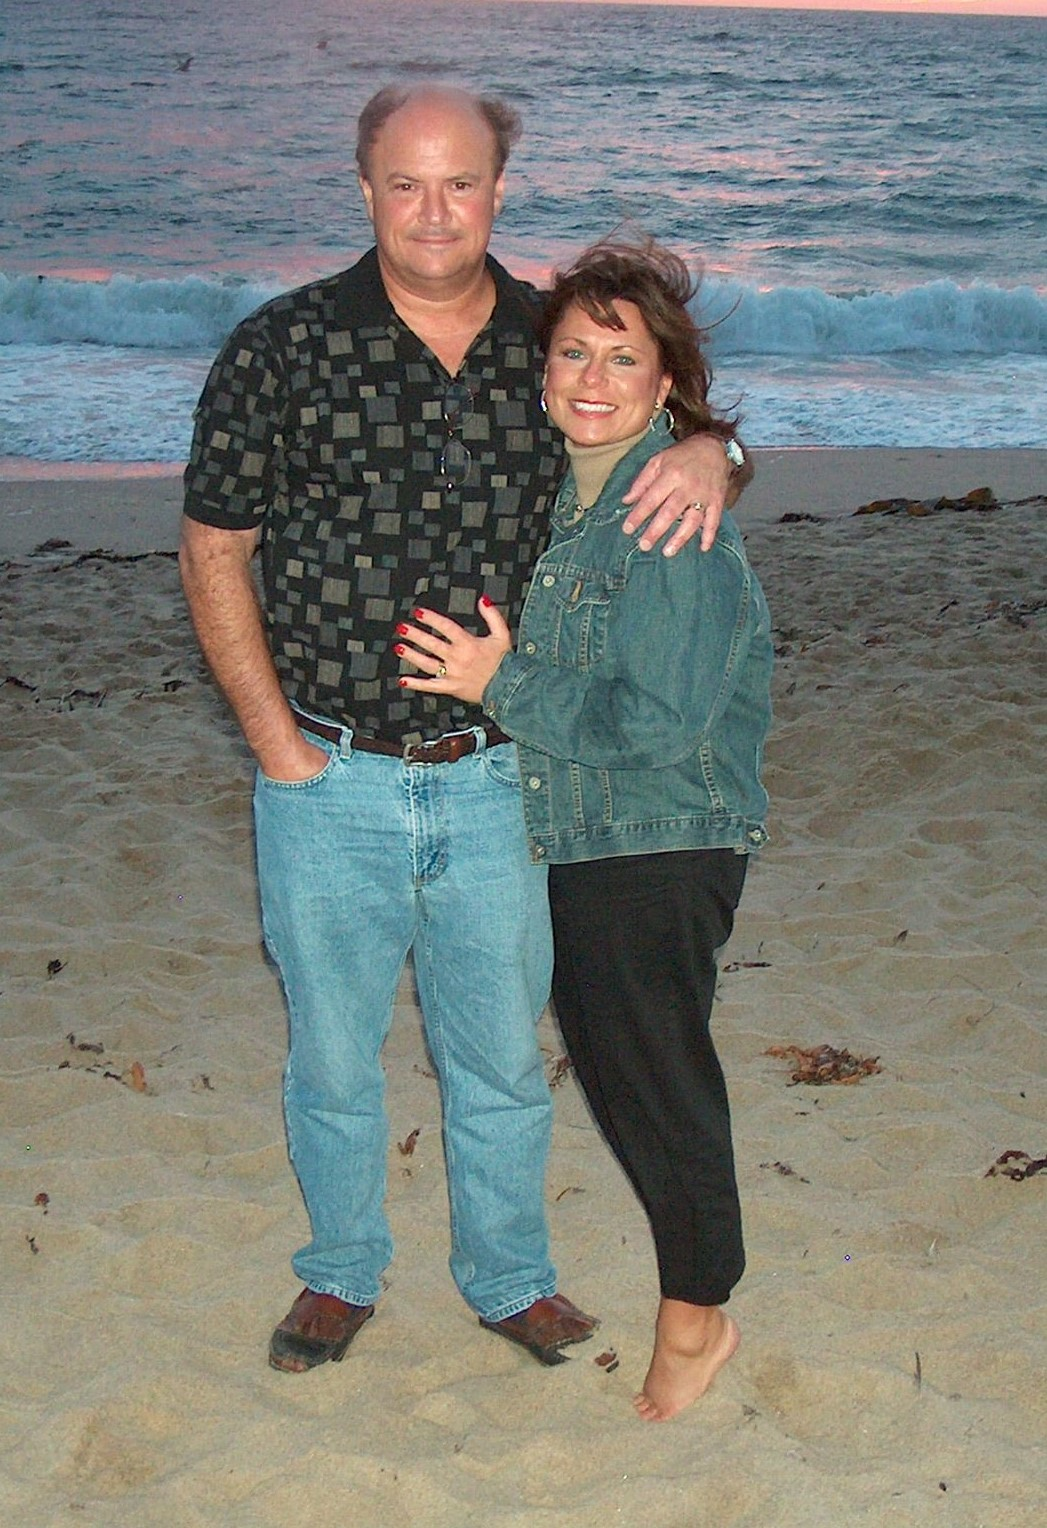 Todd and Liz on beach